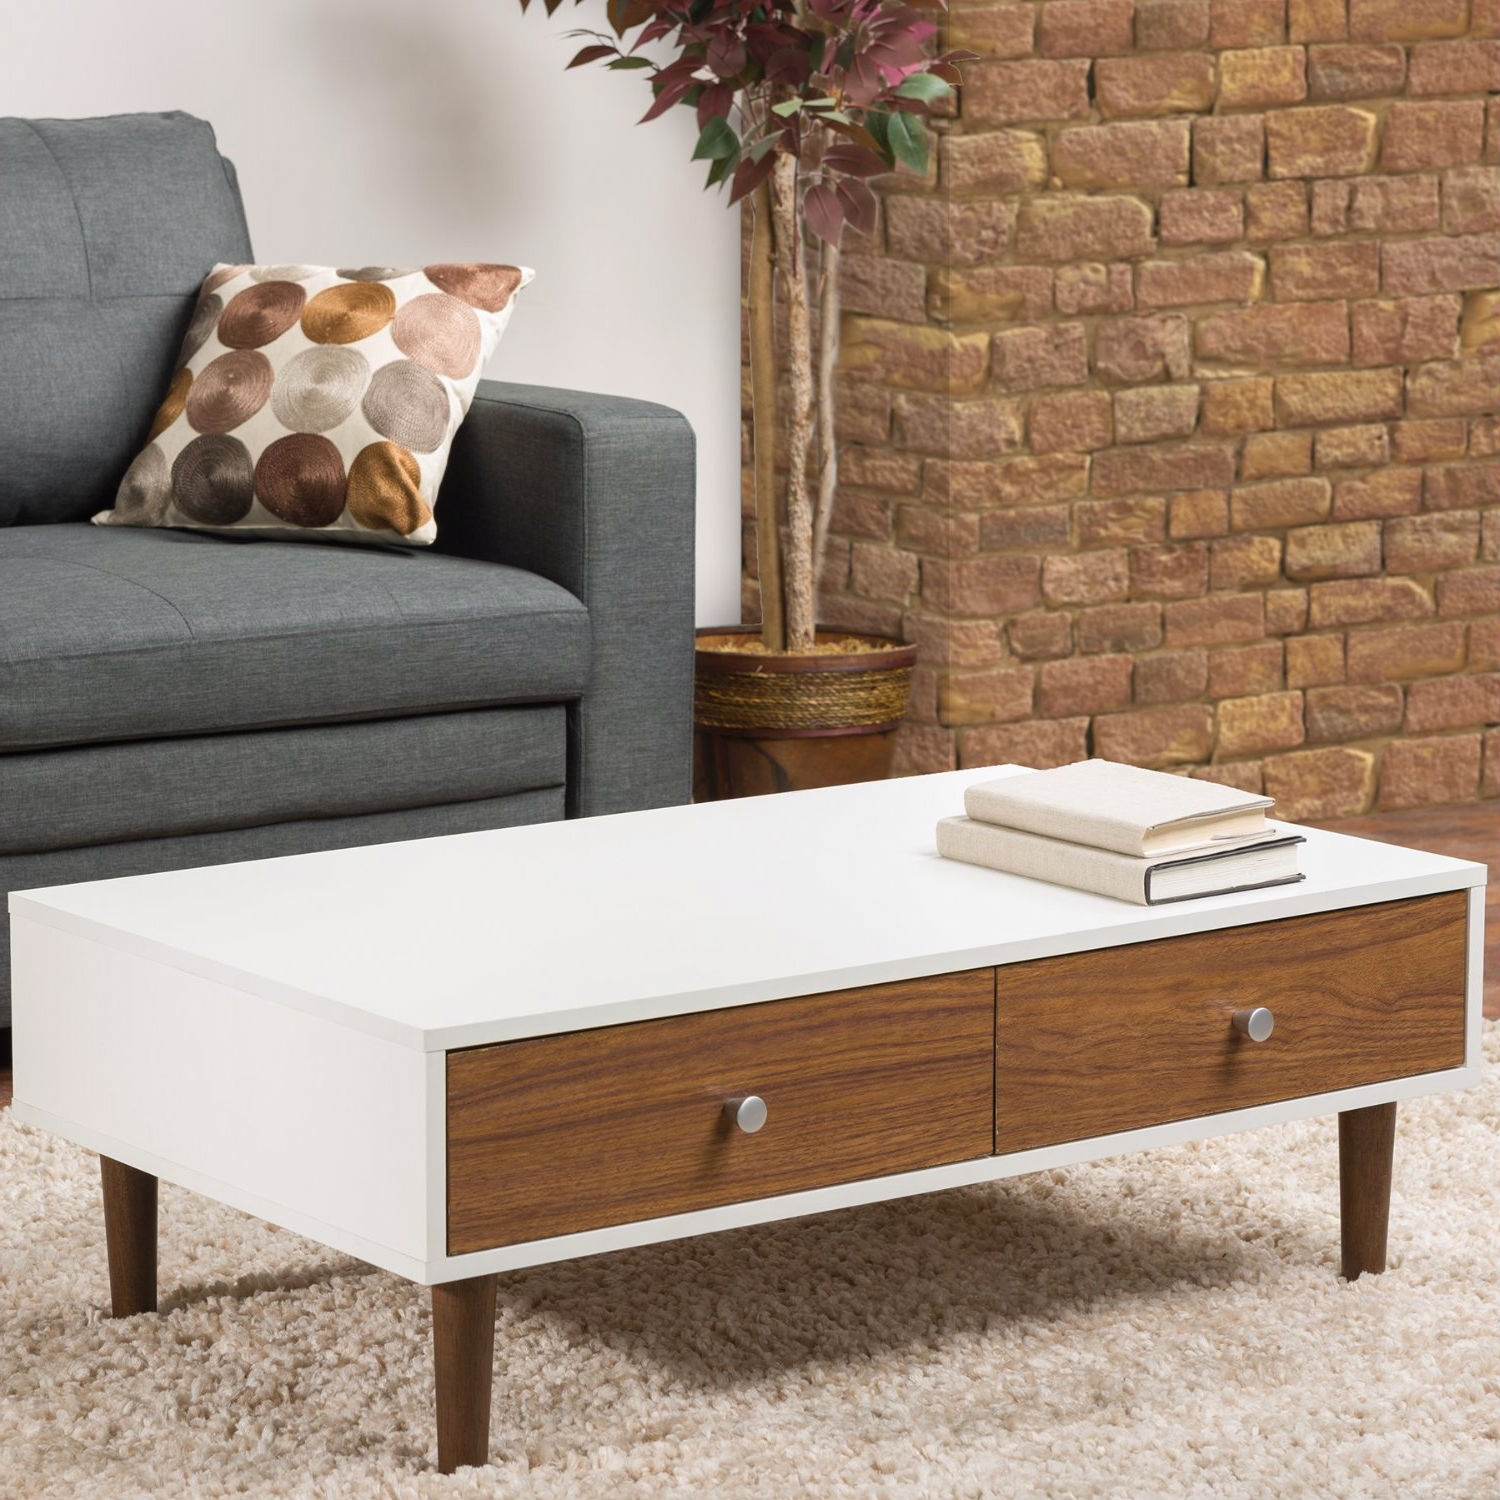 Image of: Modern Mid Century Style White Wood Coffee Table With 2 Drawers Fastfurnishings Com